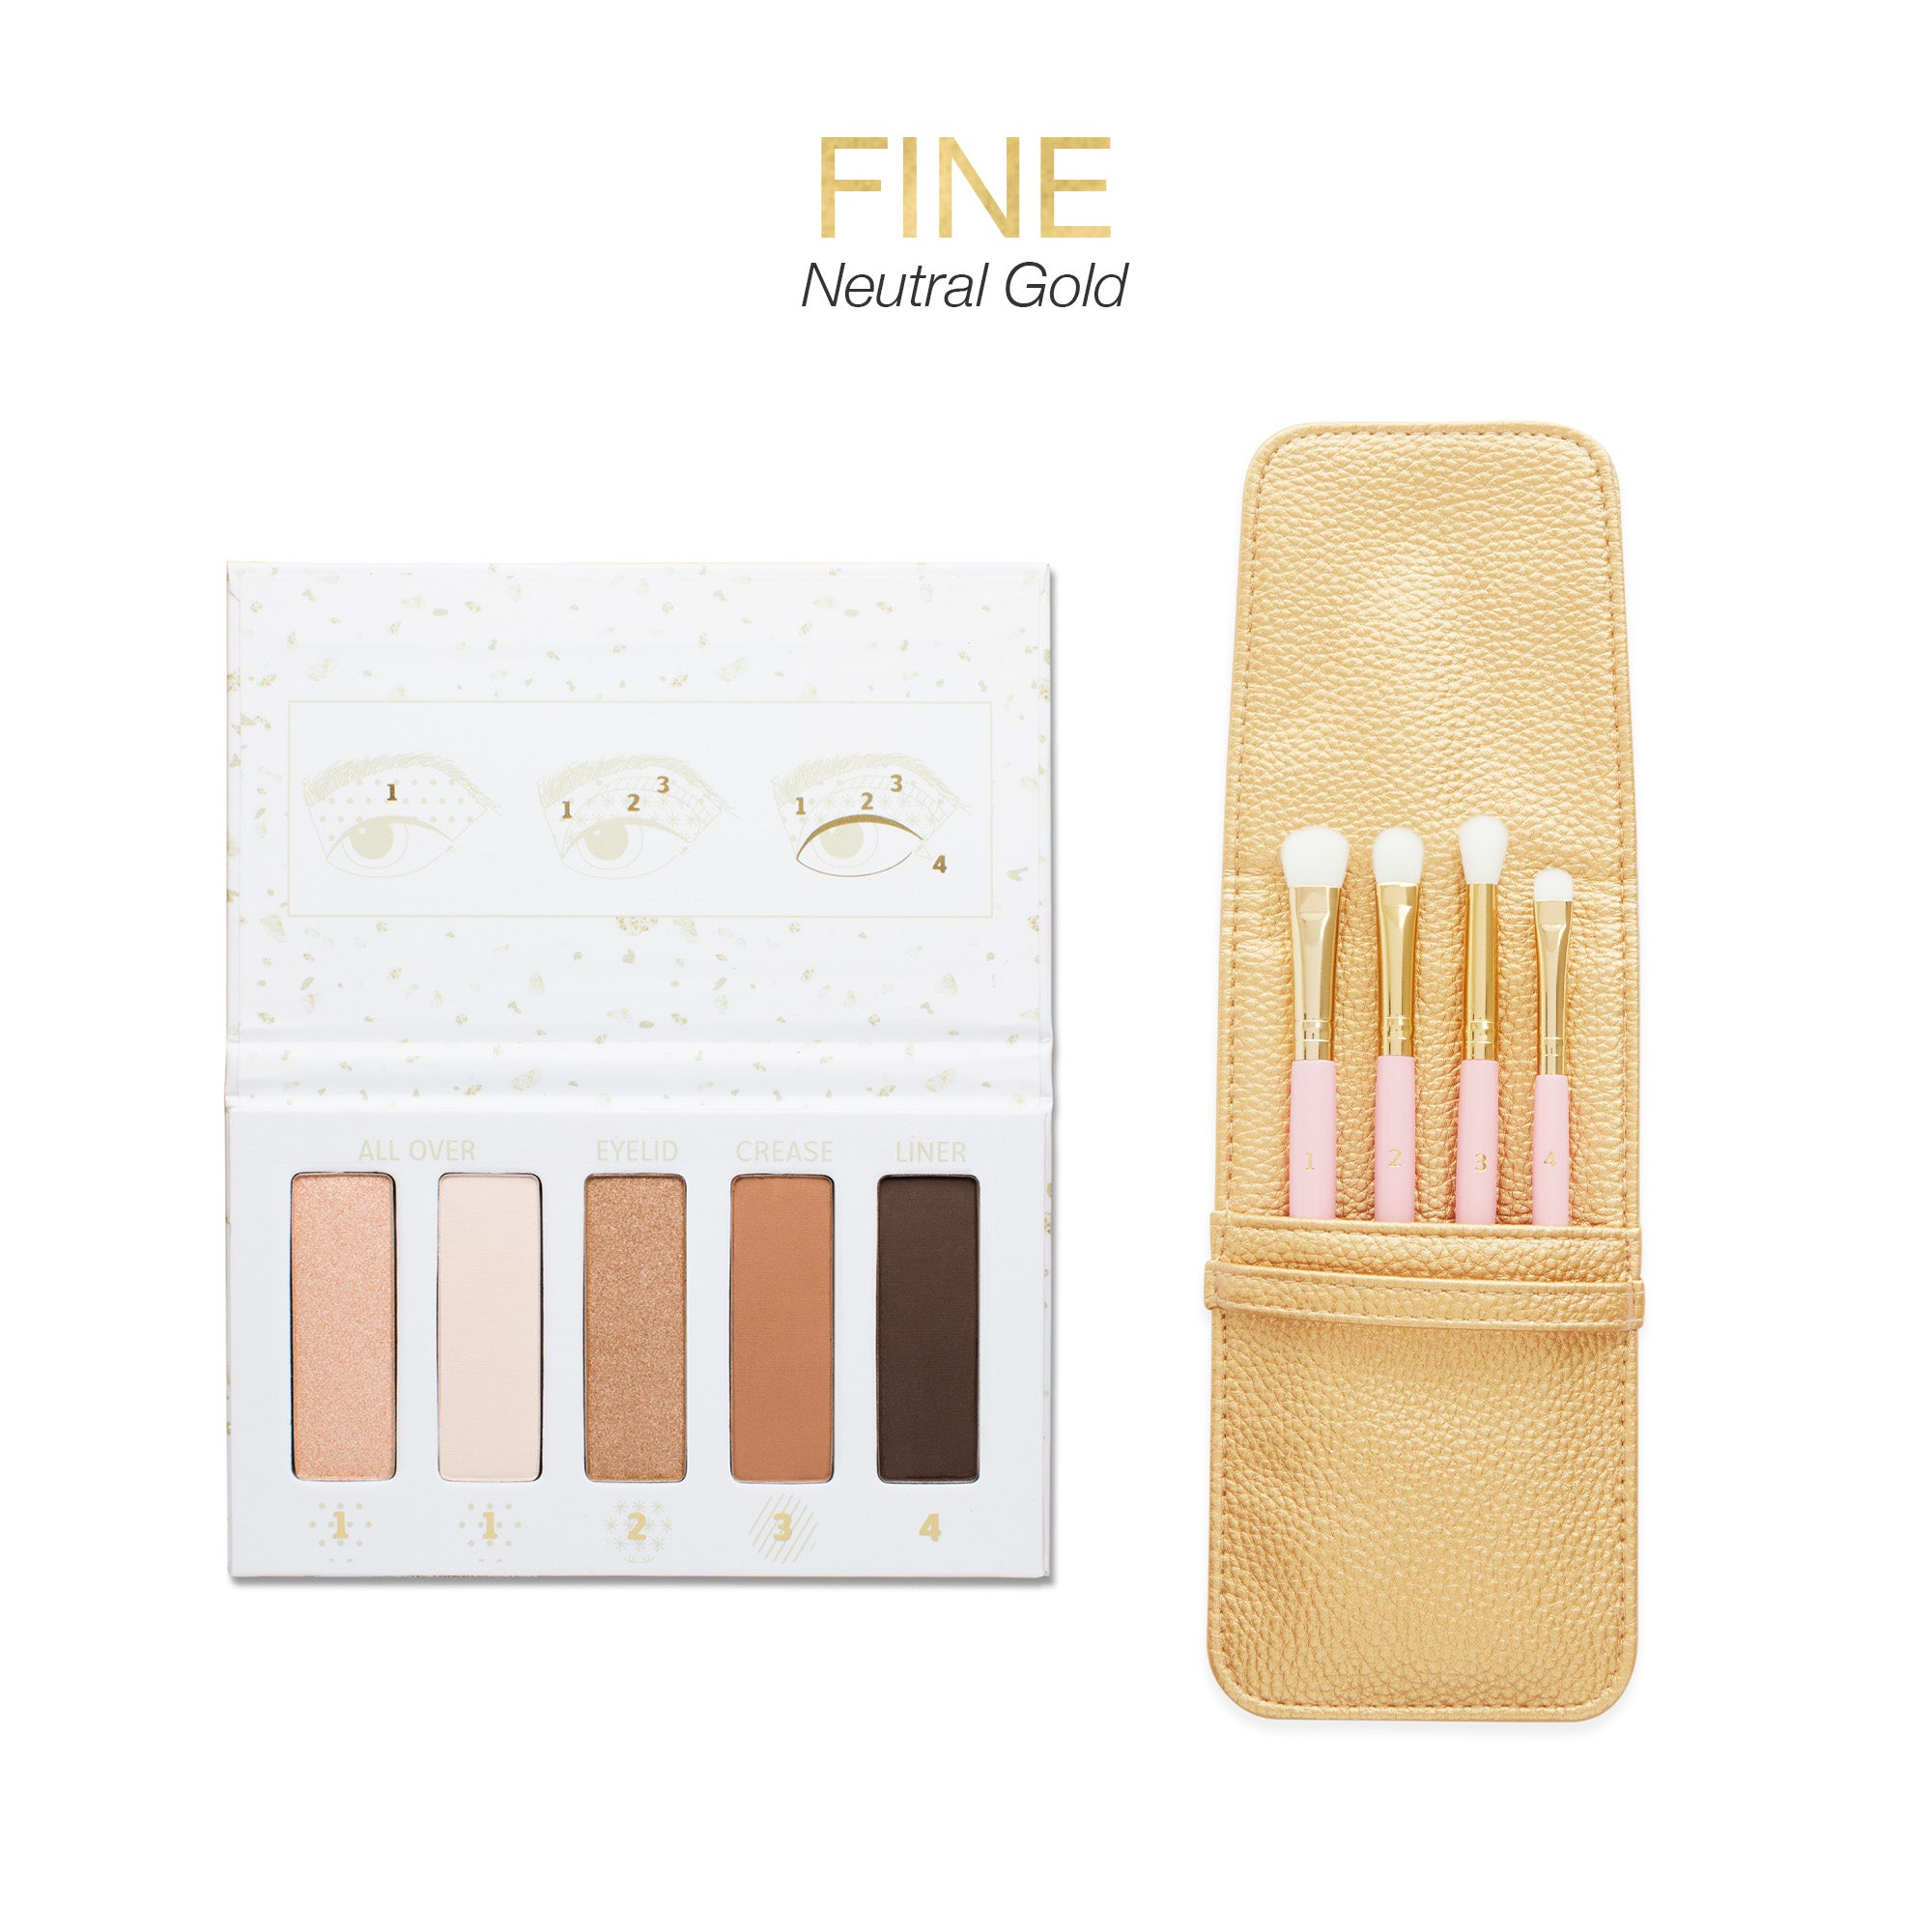 VIP FLEKK Eye Shadow Palette and Brush Set